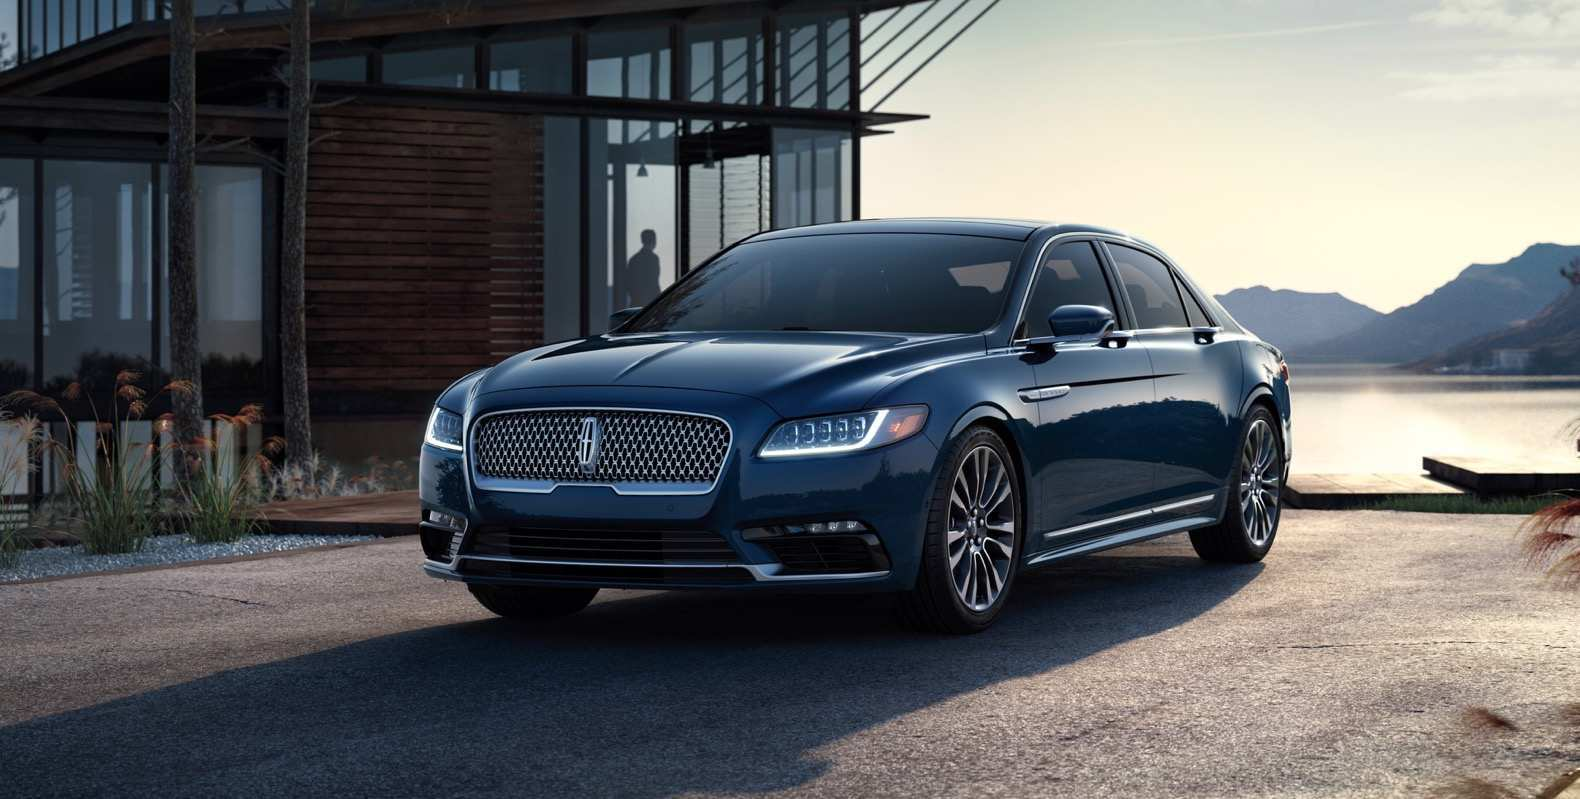 30 All New 2020 The Lincoln Continental Redesign And Review